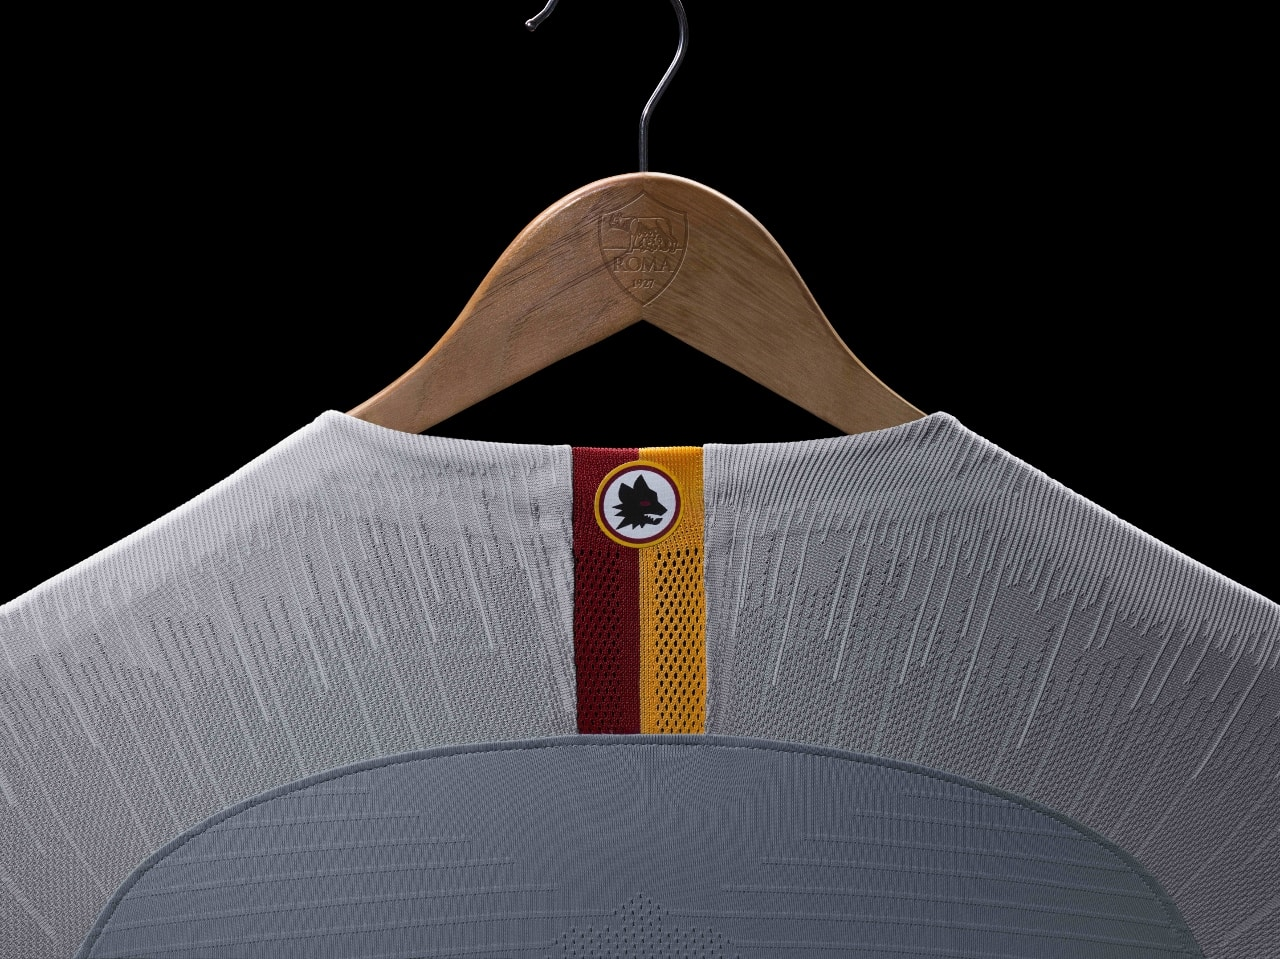 maillot-football-Nike-AS-Roma-away-2018-2019-gris-img2